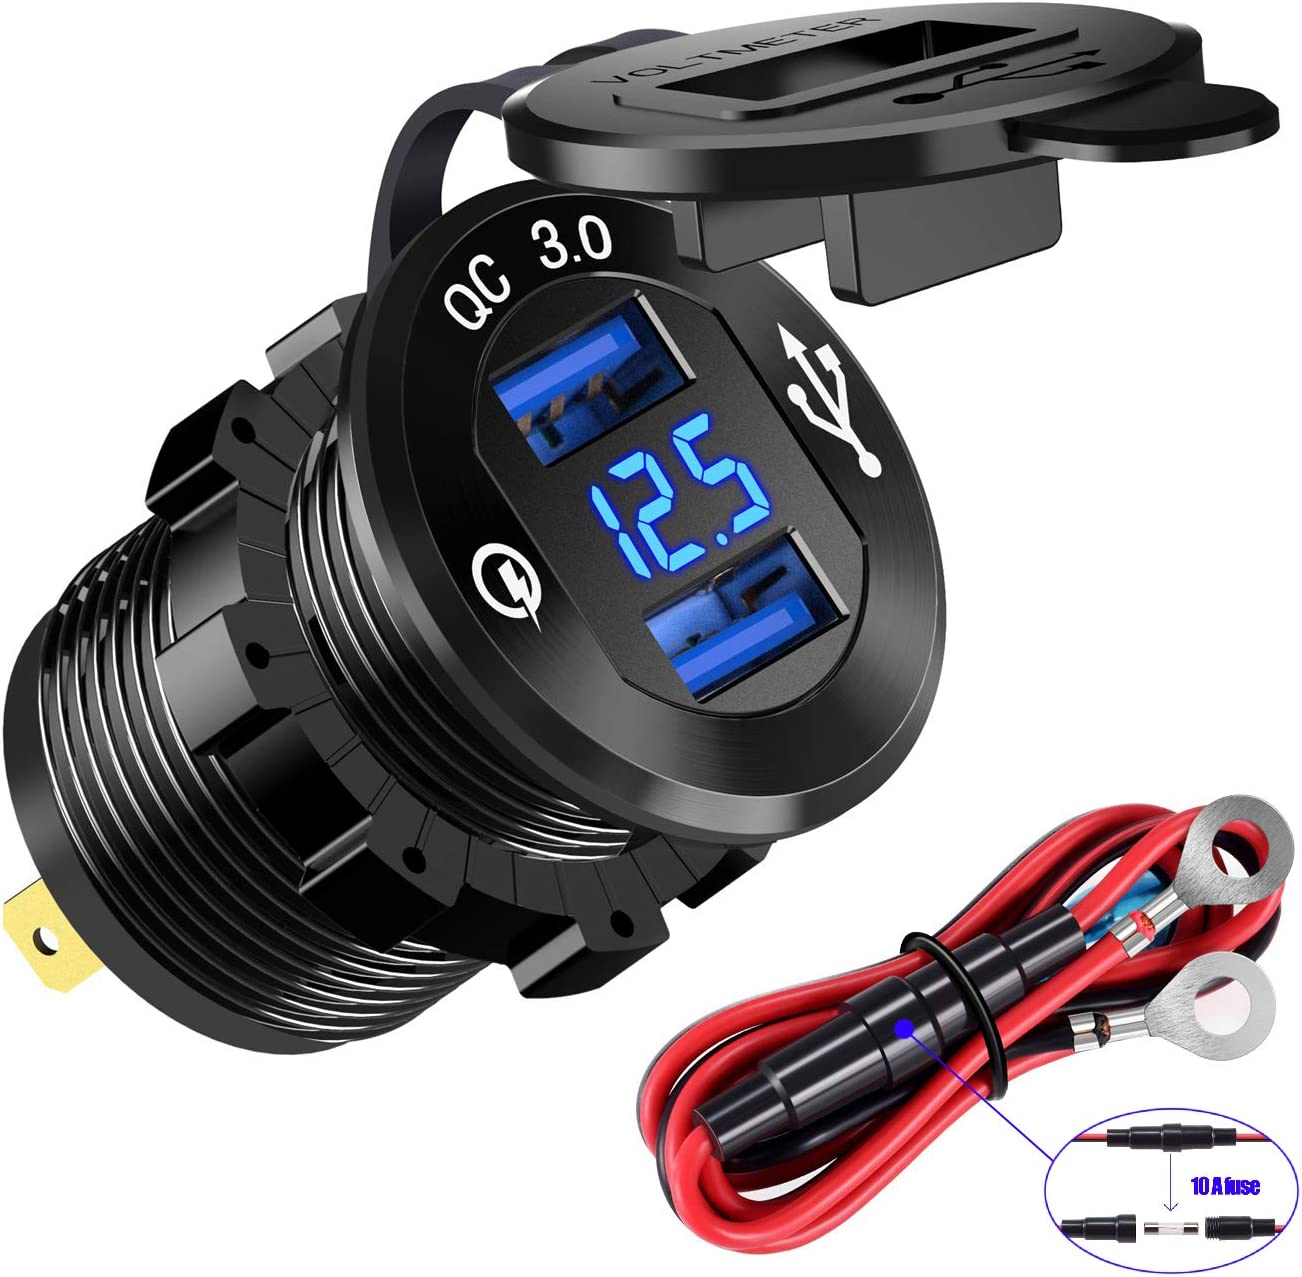 YonHan Quick Charge 3.0 Dual USB Charger Socket Waterproof Aluminum Power Outlet Fast Charge with LED Voltmeter /& Wire Fuse DIY Kit for 12V//24V Car Boat Marine ATV Bus Truck and More GSG2016AV-1